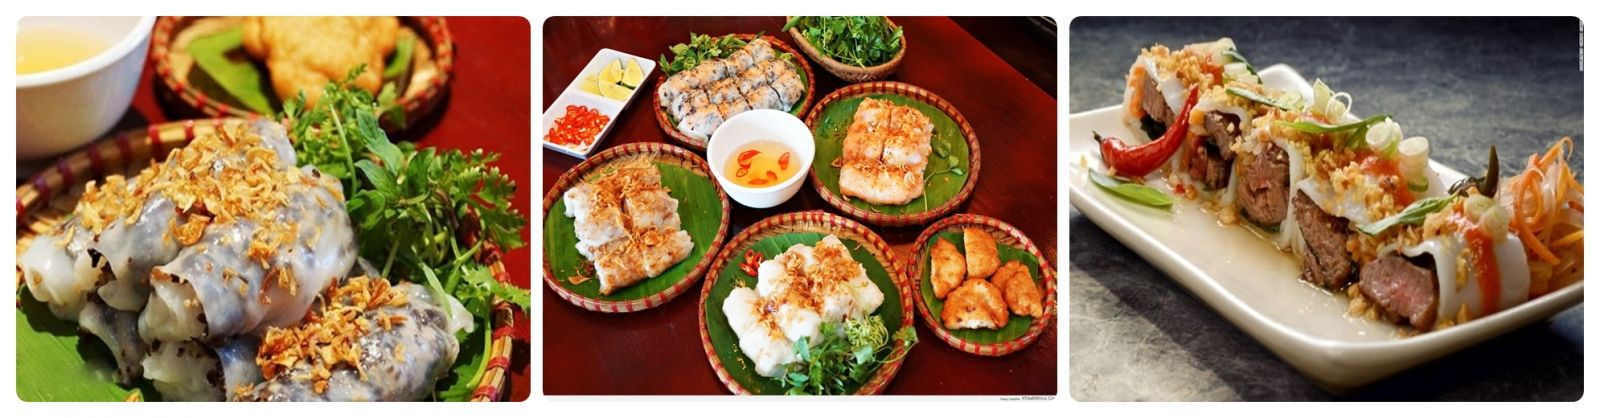 vietnam cuisine tour packages